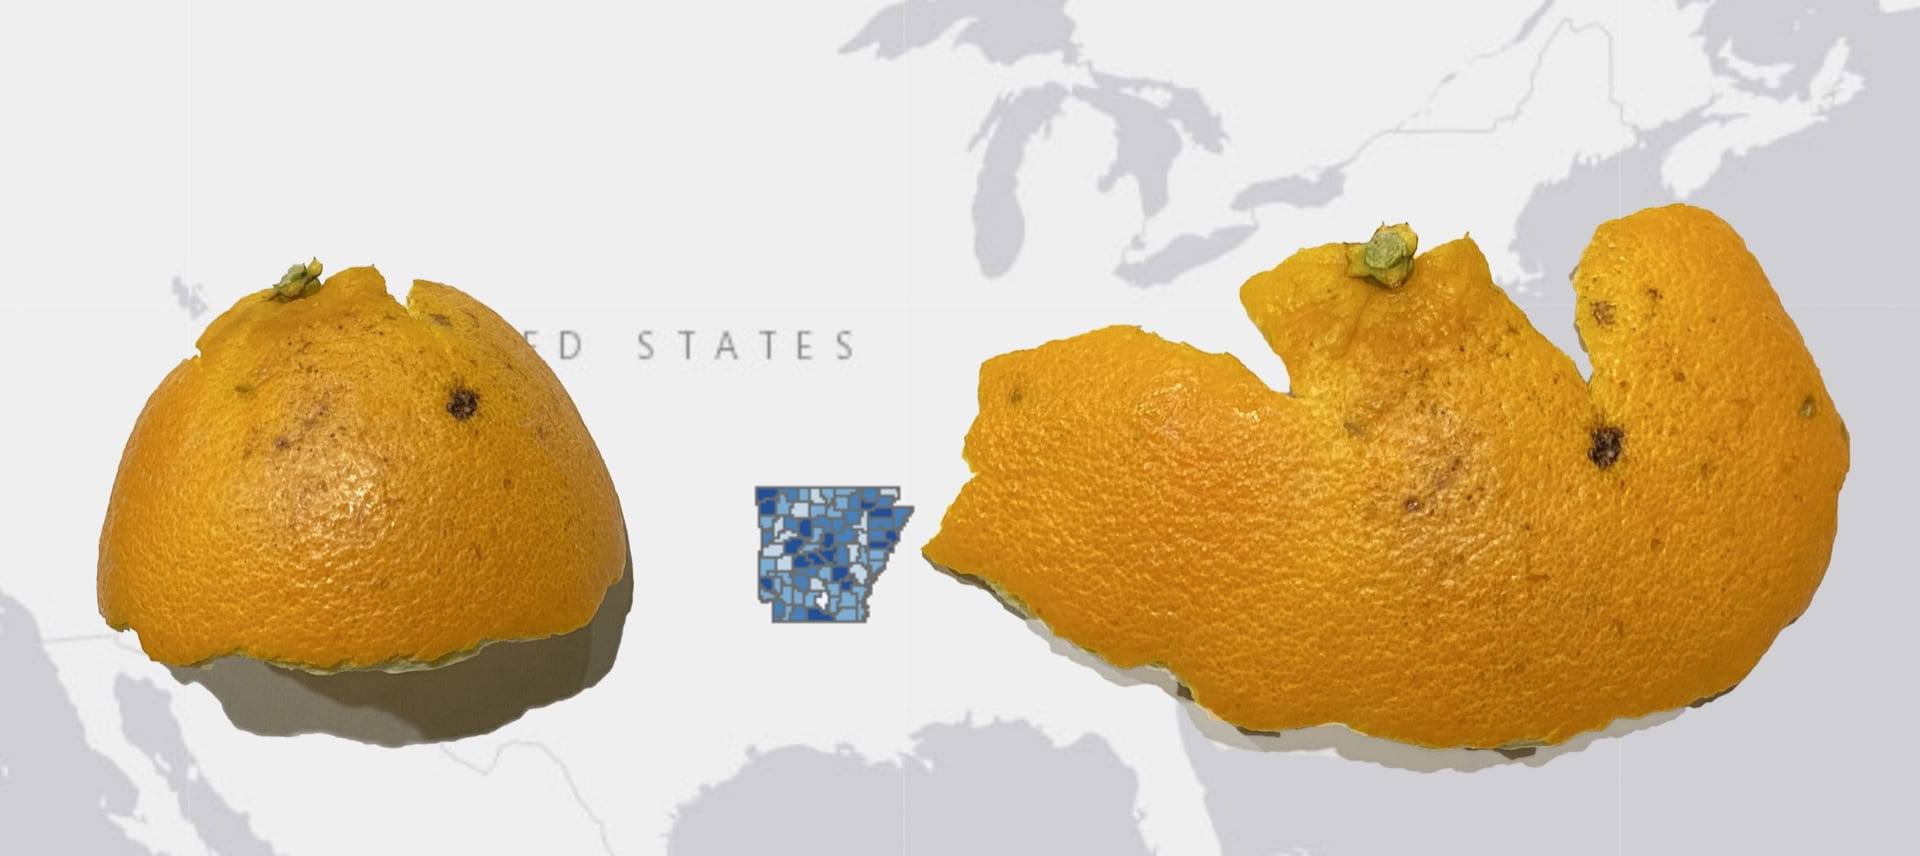 Orange peel is superimposed on US map. Arkansas is highlighted with a chloroplast map showing COVID-19 cases.